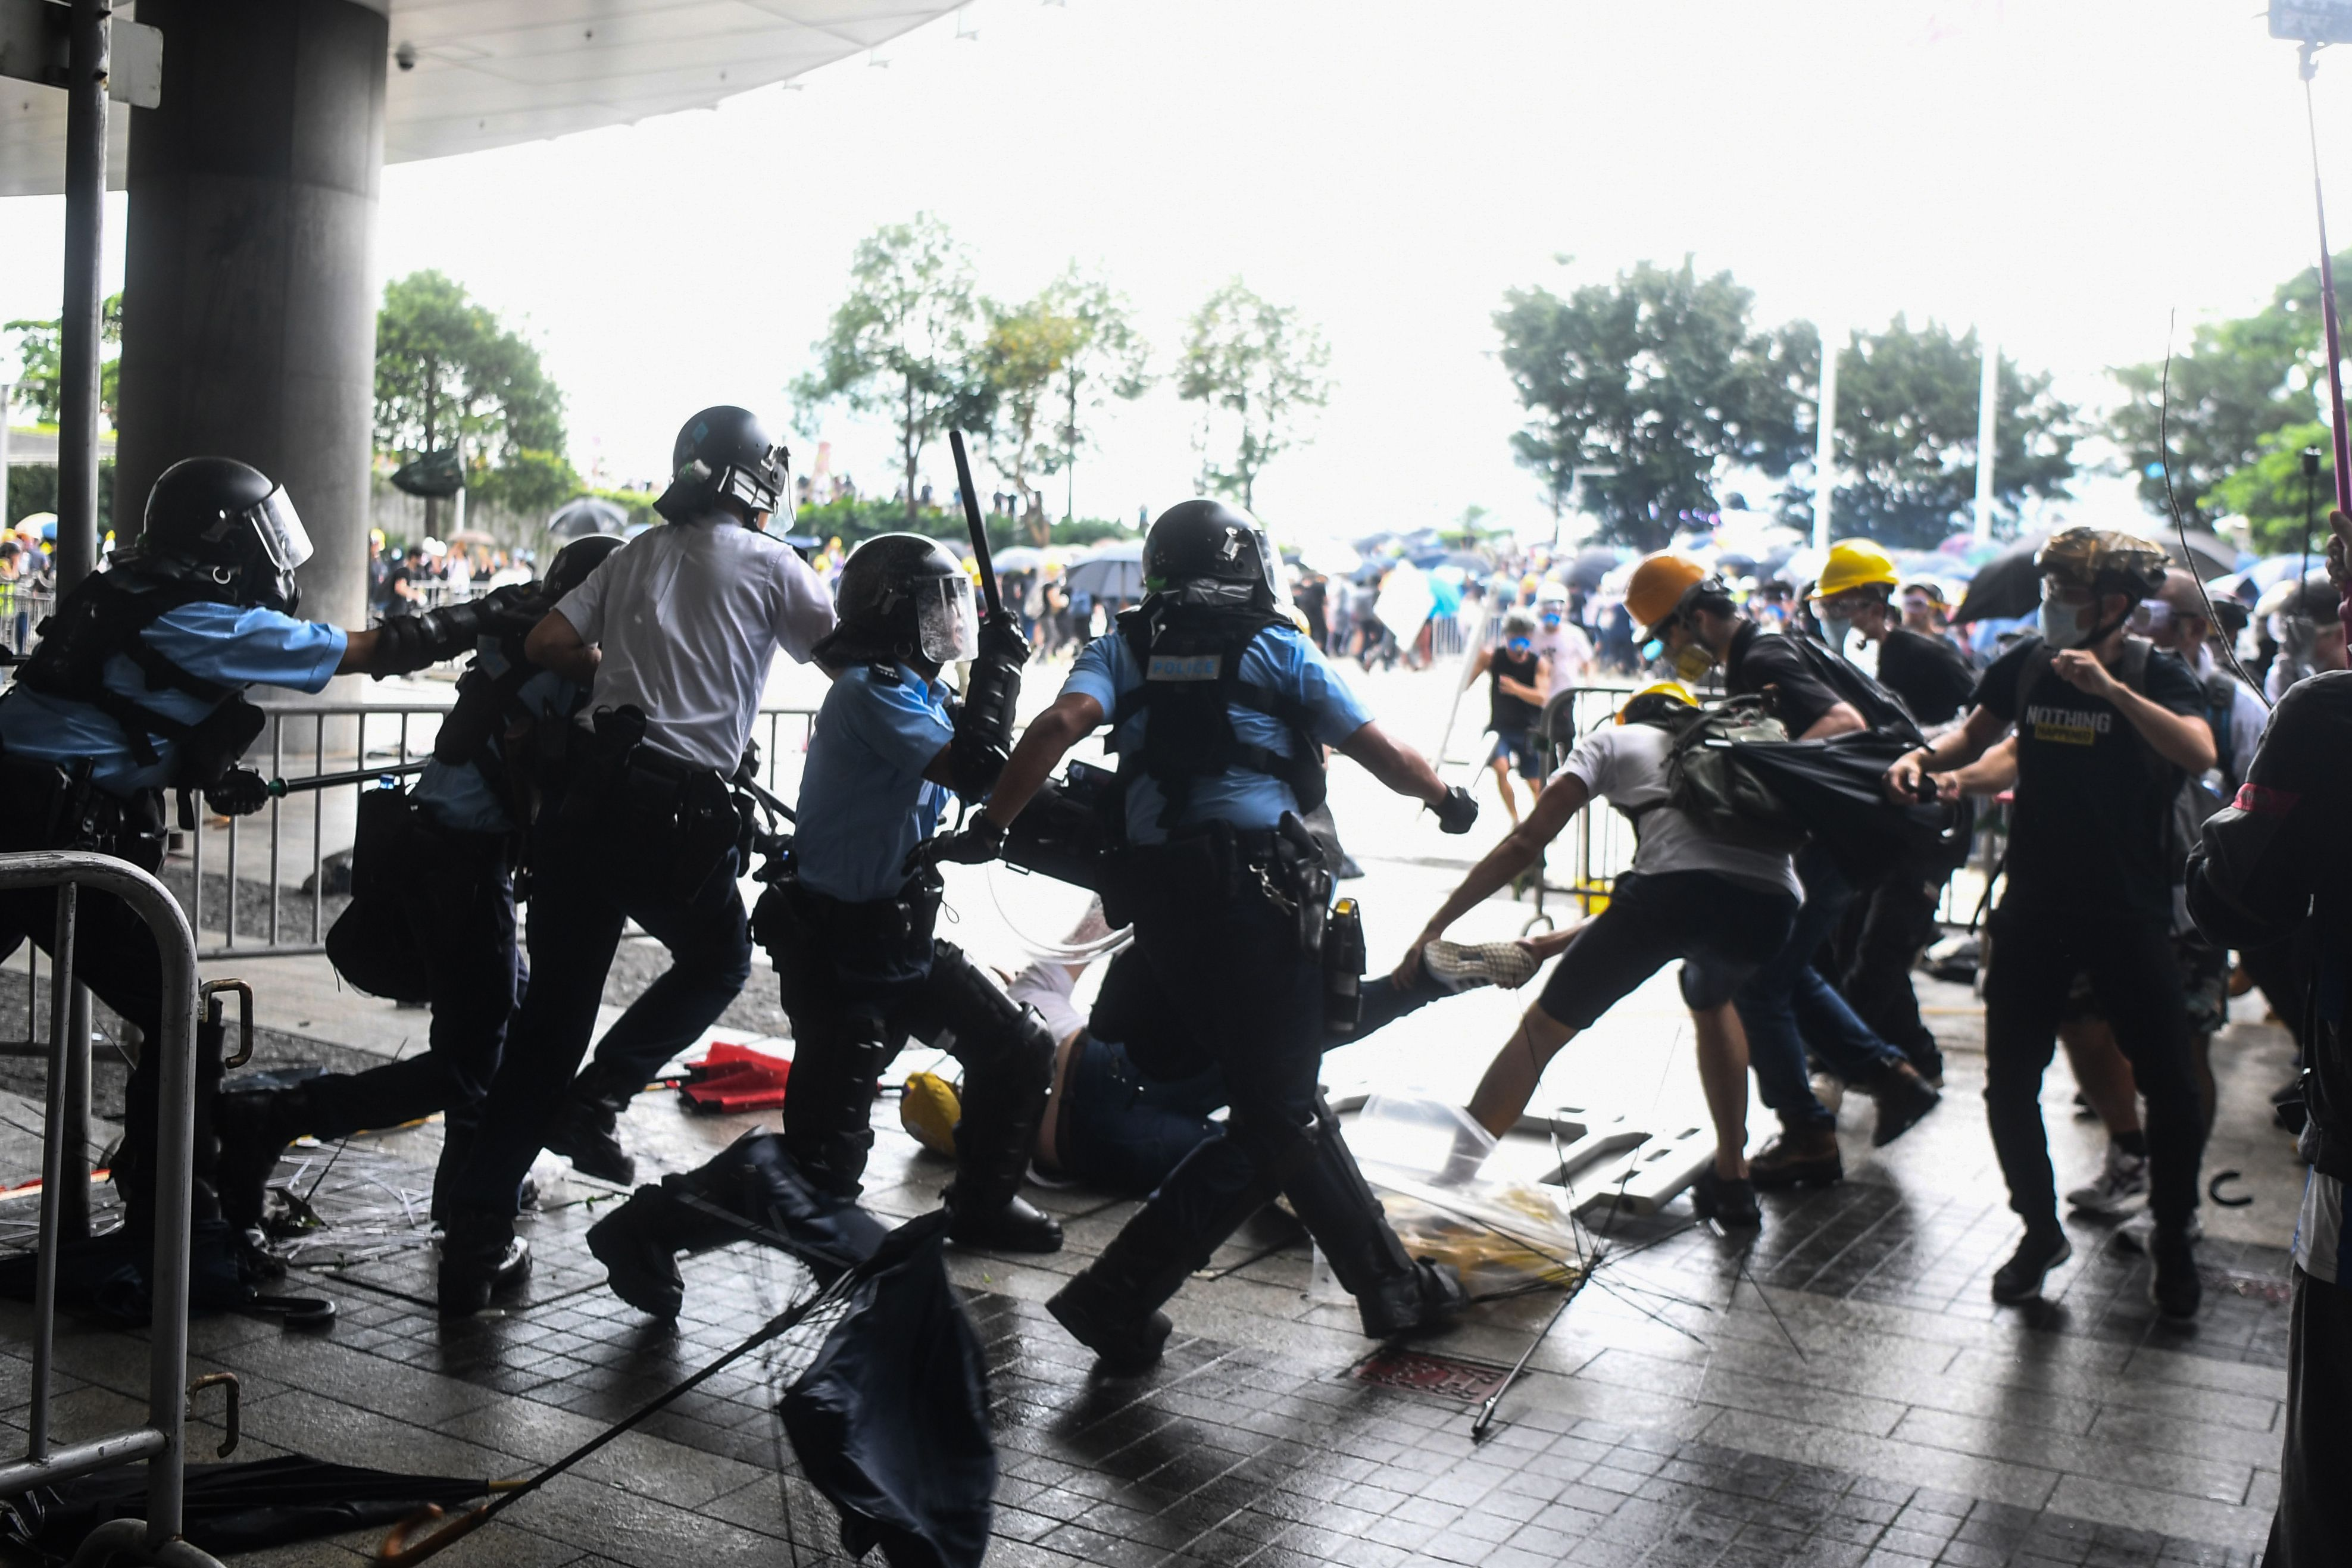 Protesters and police clashed in front of the Hong Kong legislature over new laws bringing them closer to China